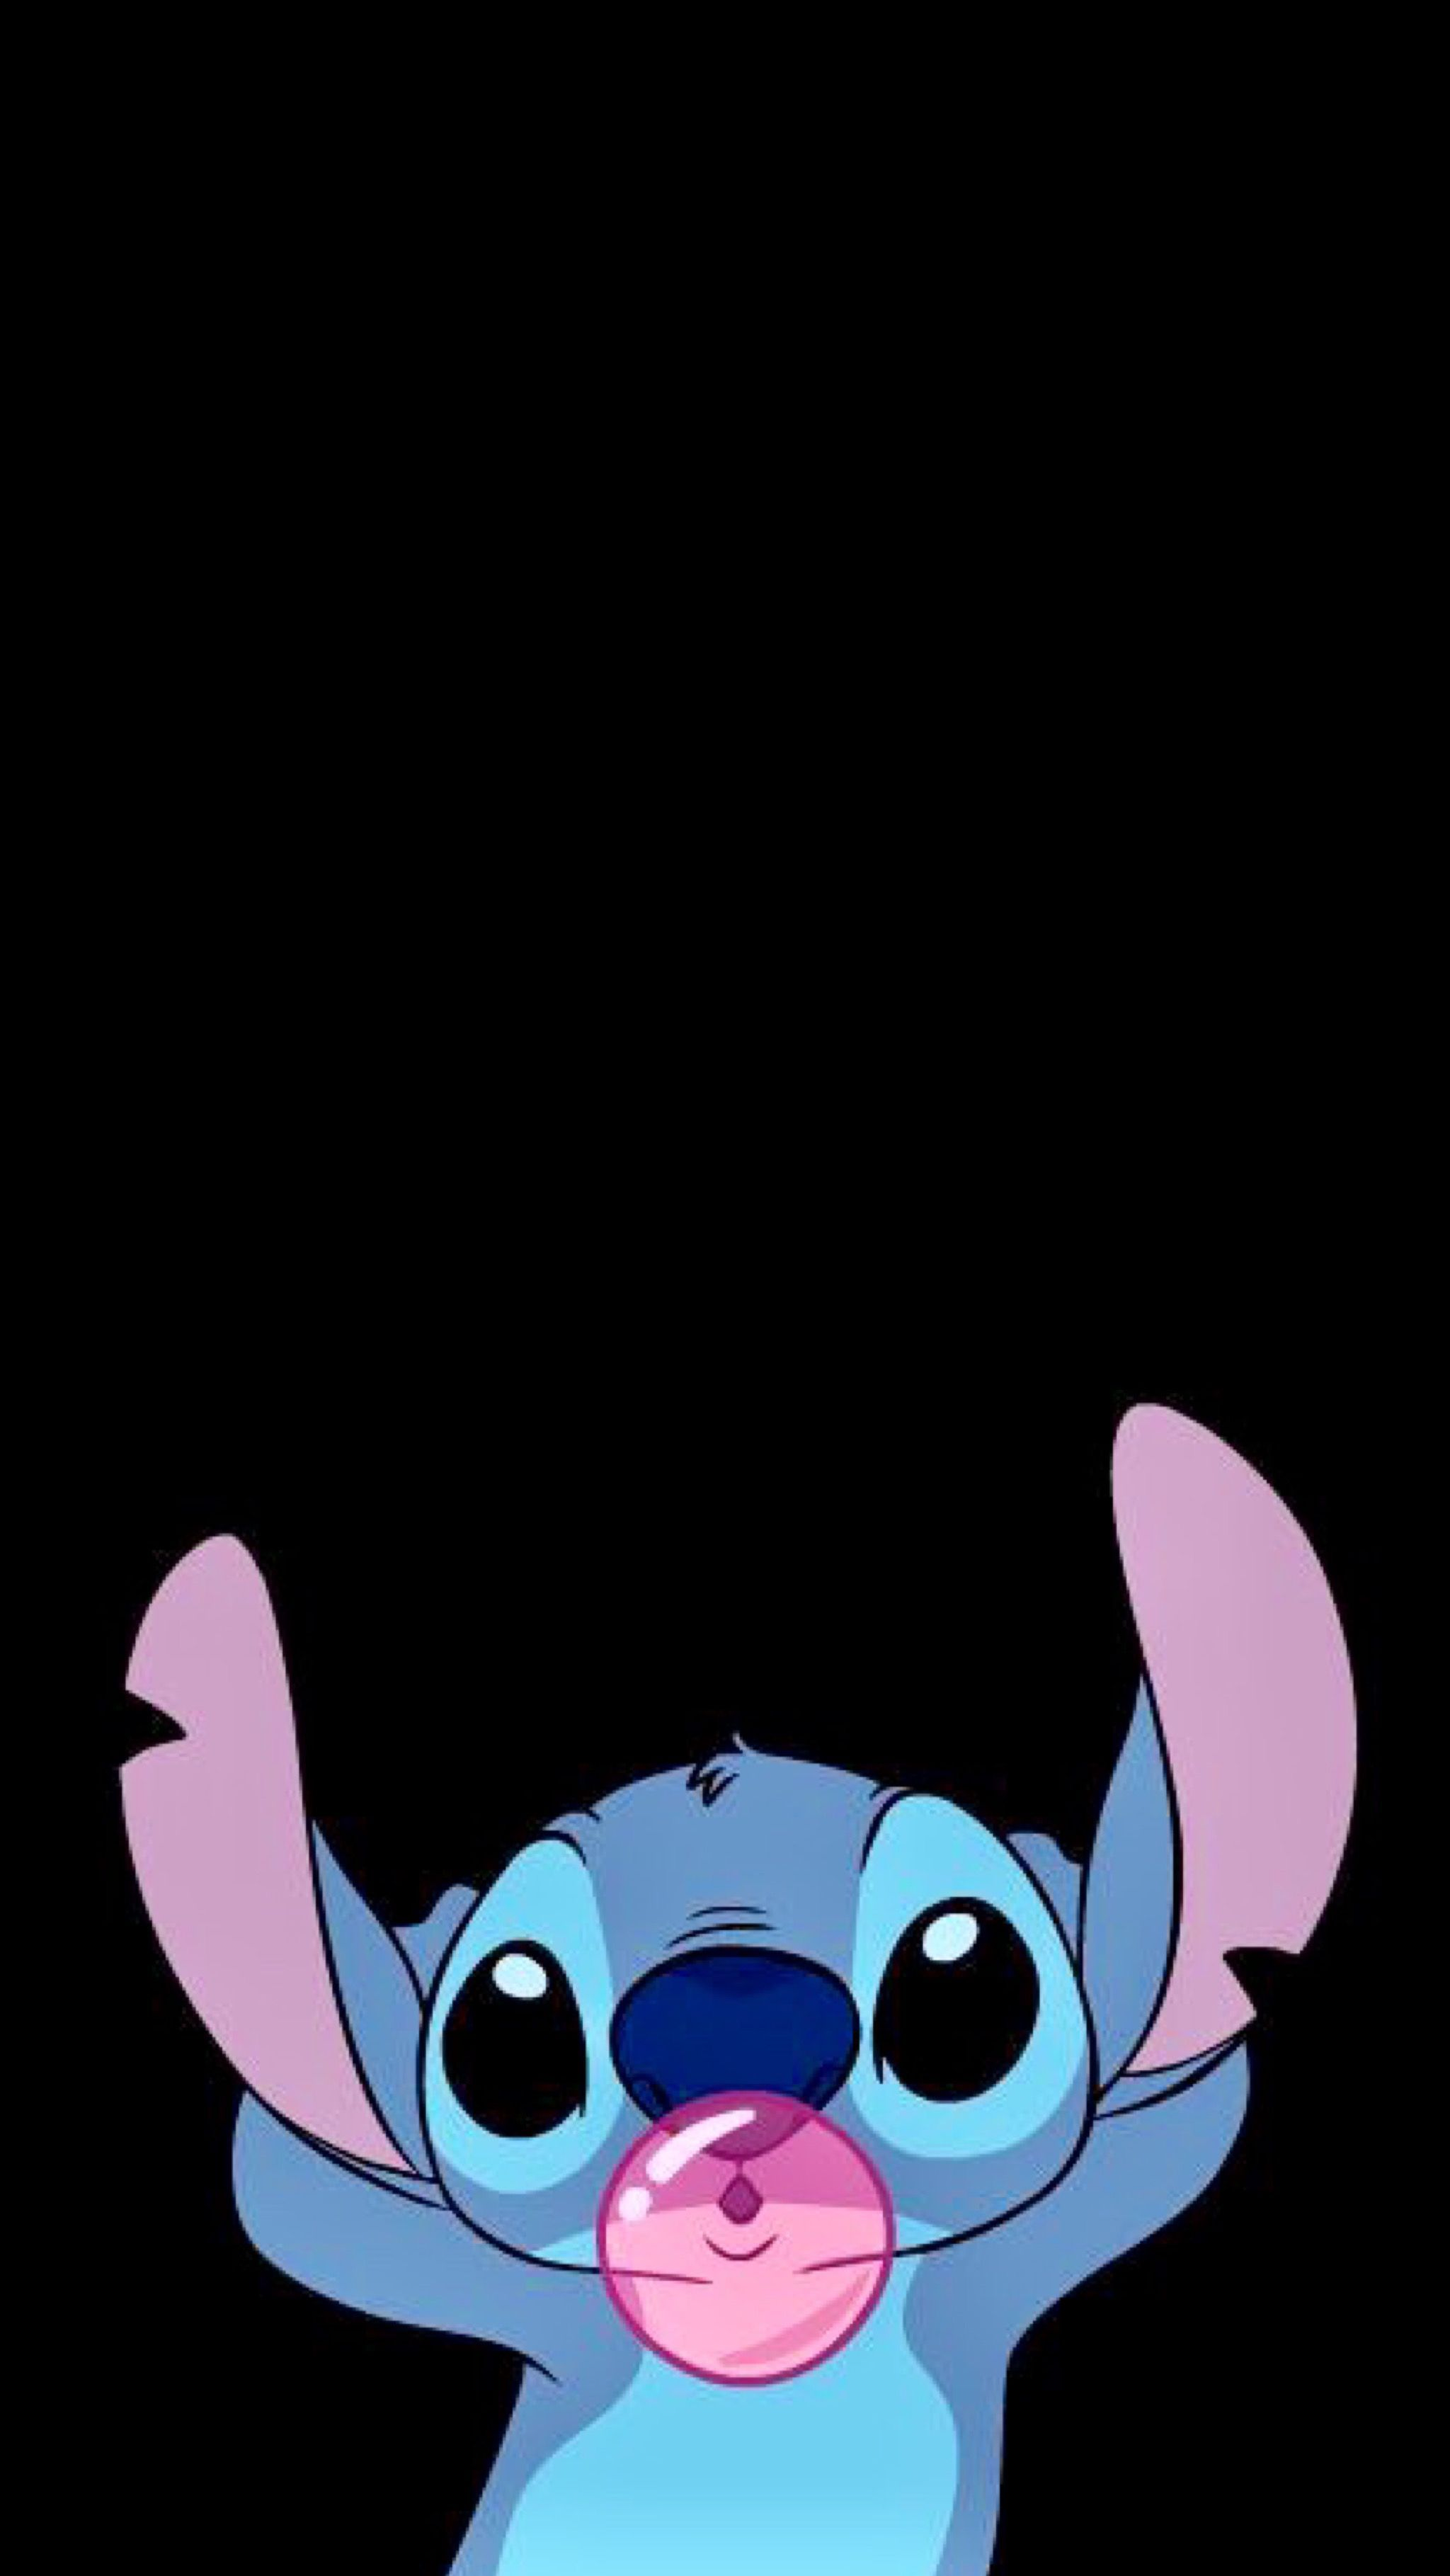 20 Cute Wallpaper Iphone Disney Stitch For Your Iphone